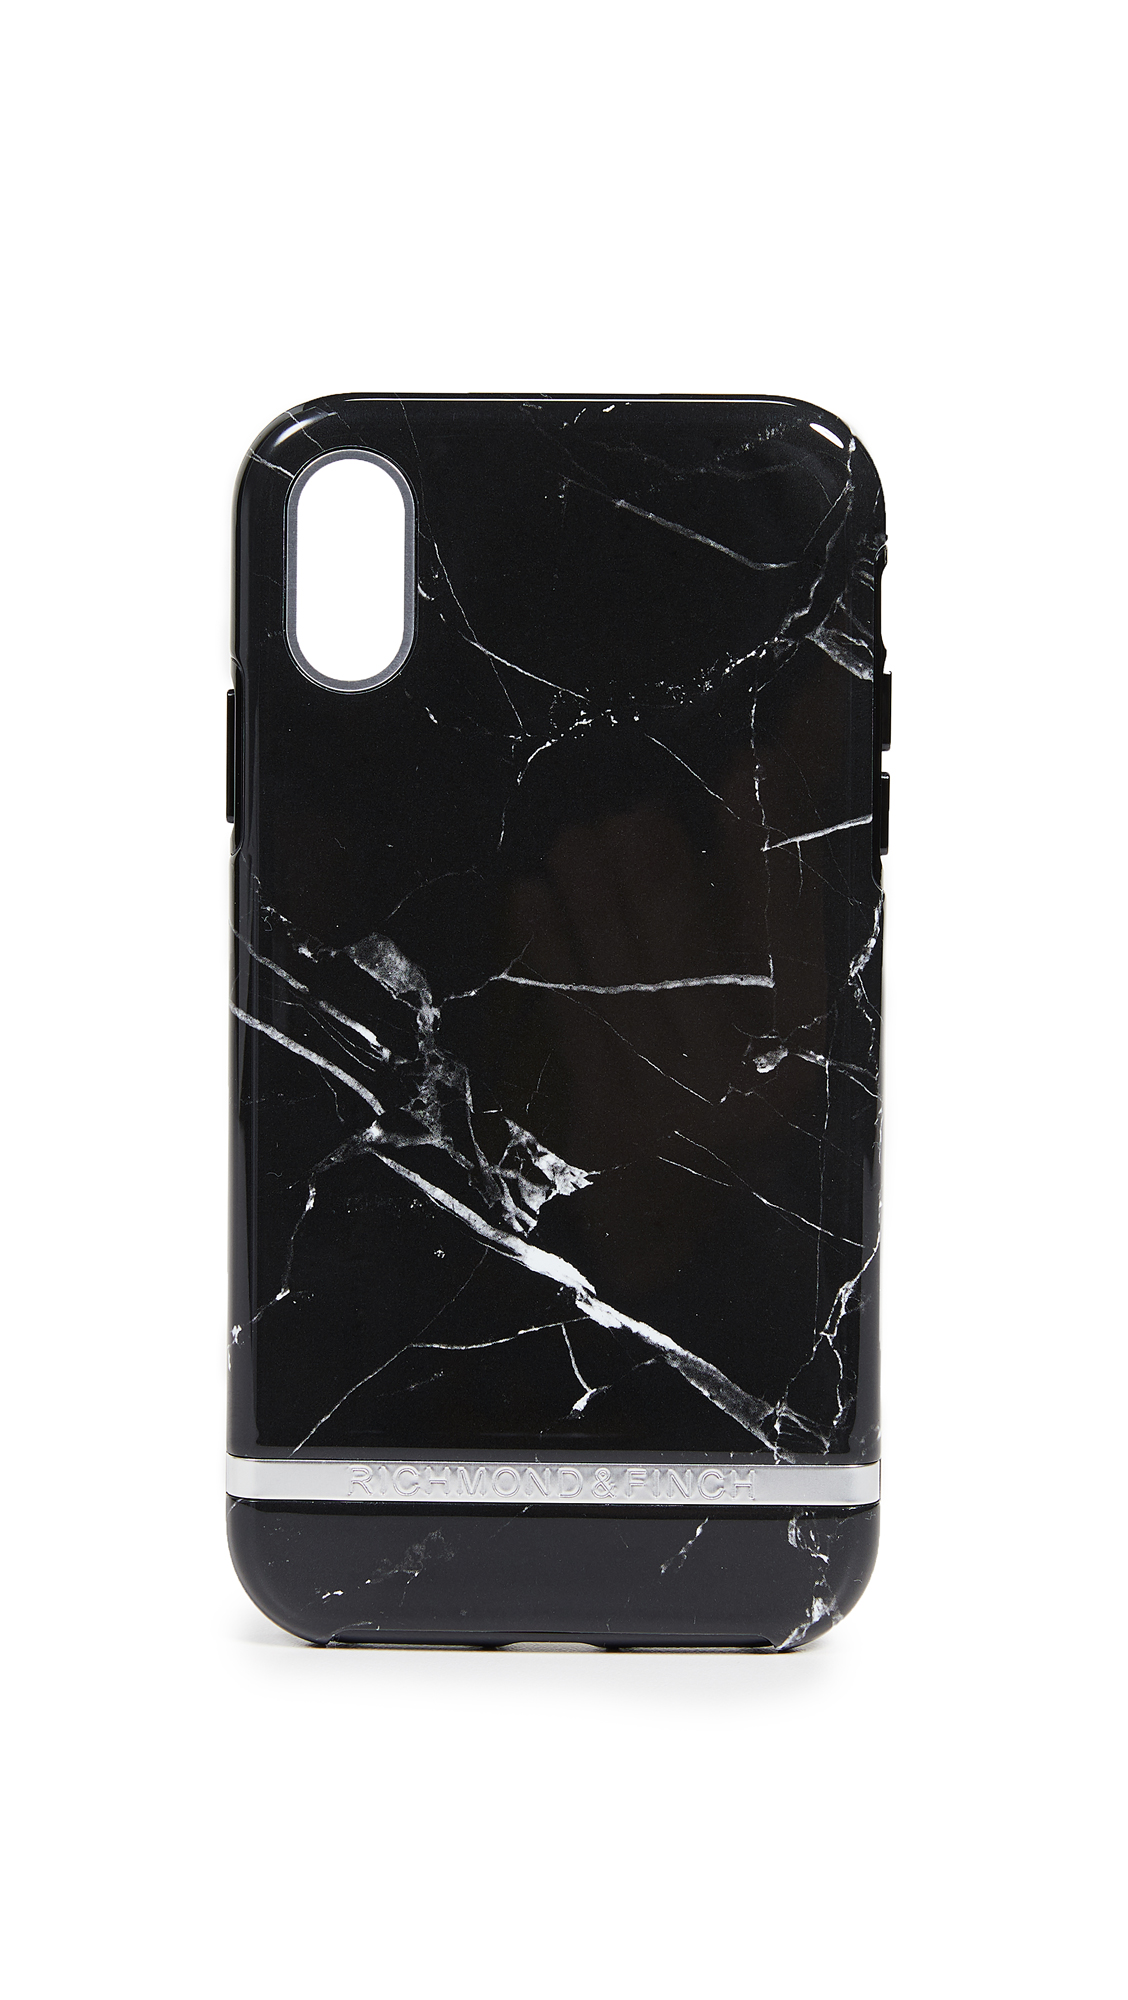 RICHMOND & FINCH Black Marble Iphone Xr Case in Black Marble/Silver